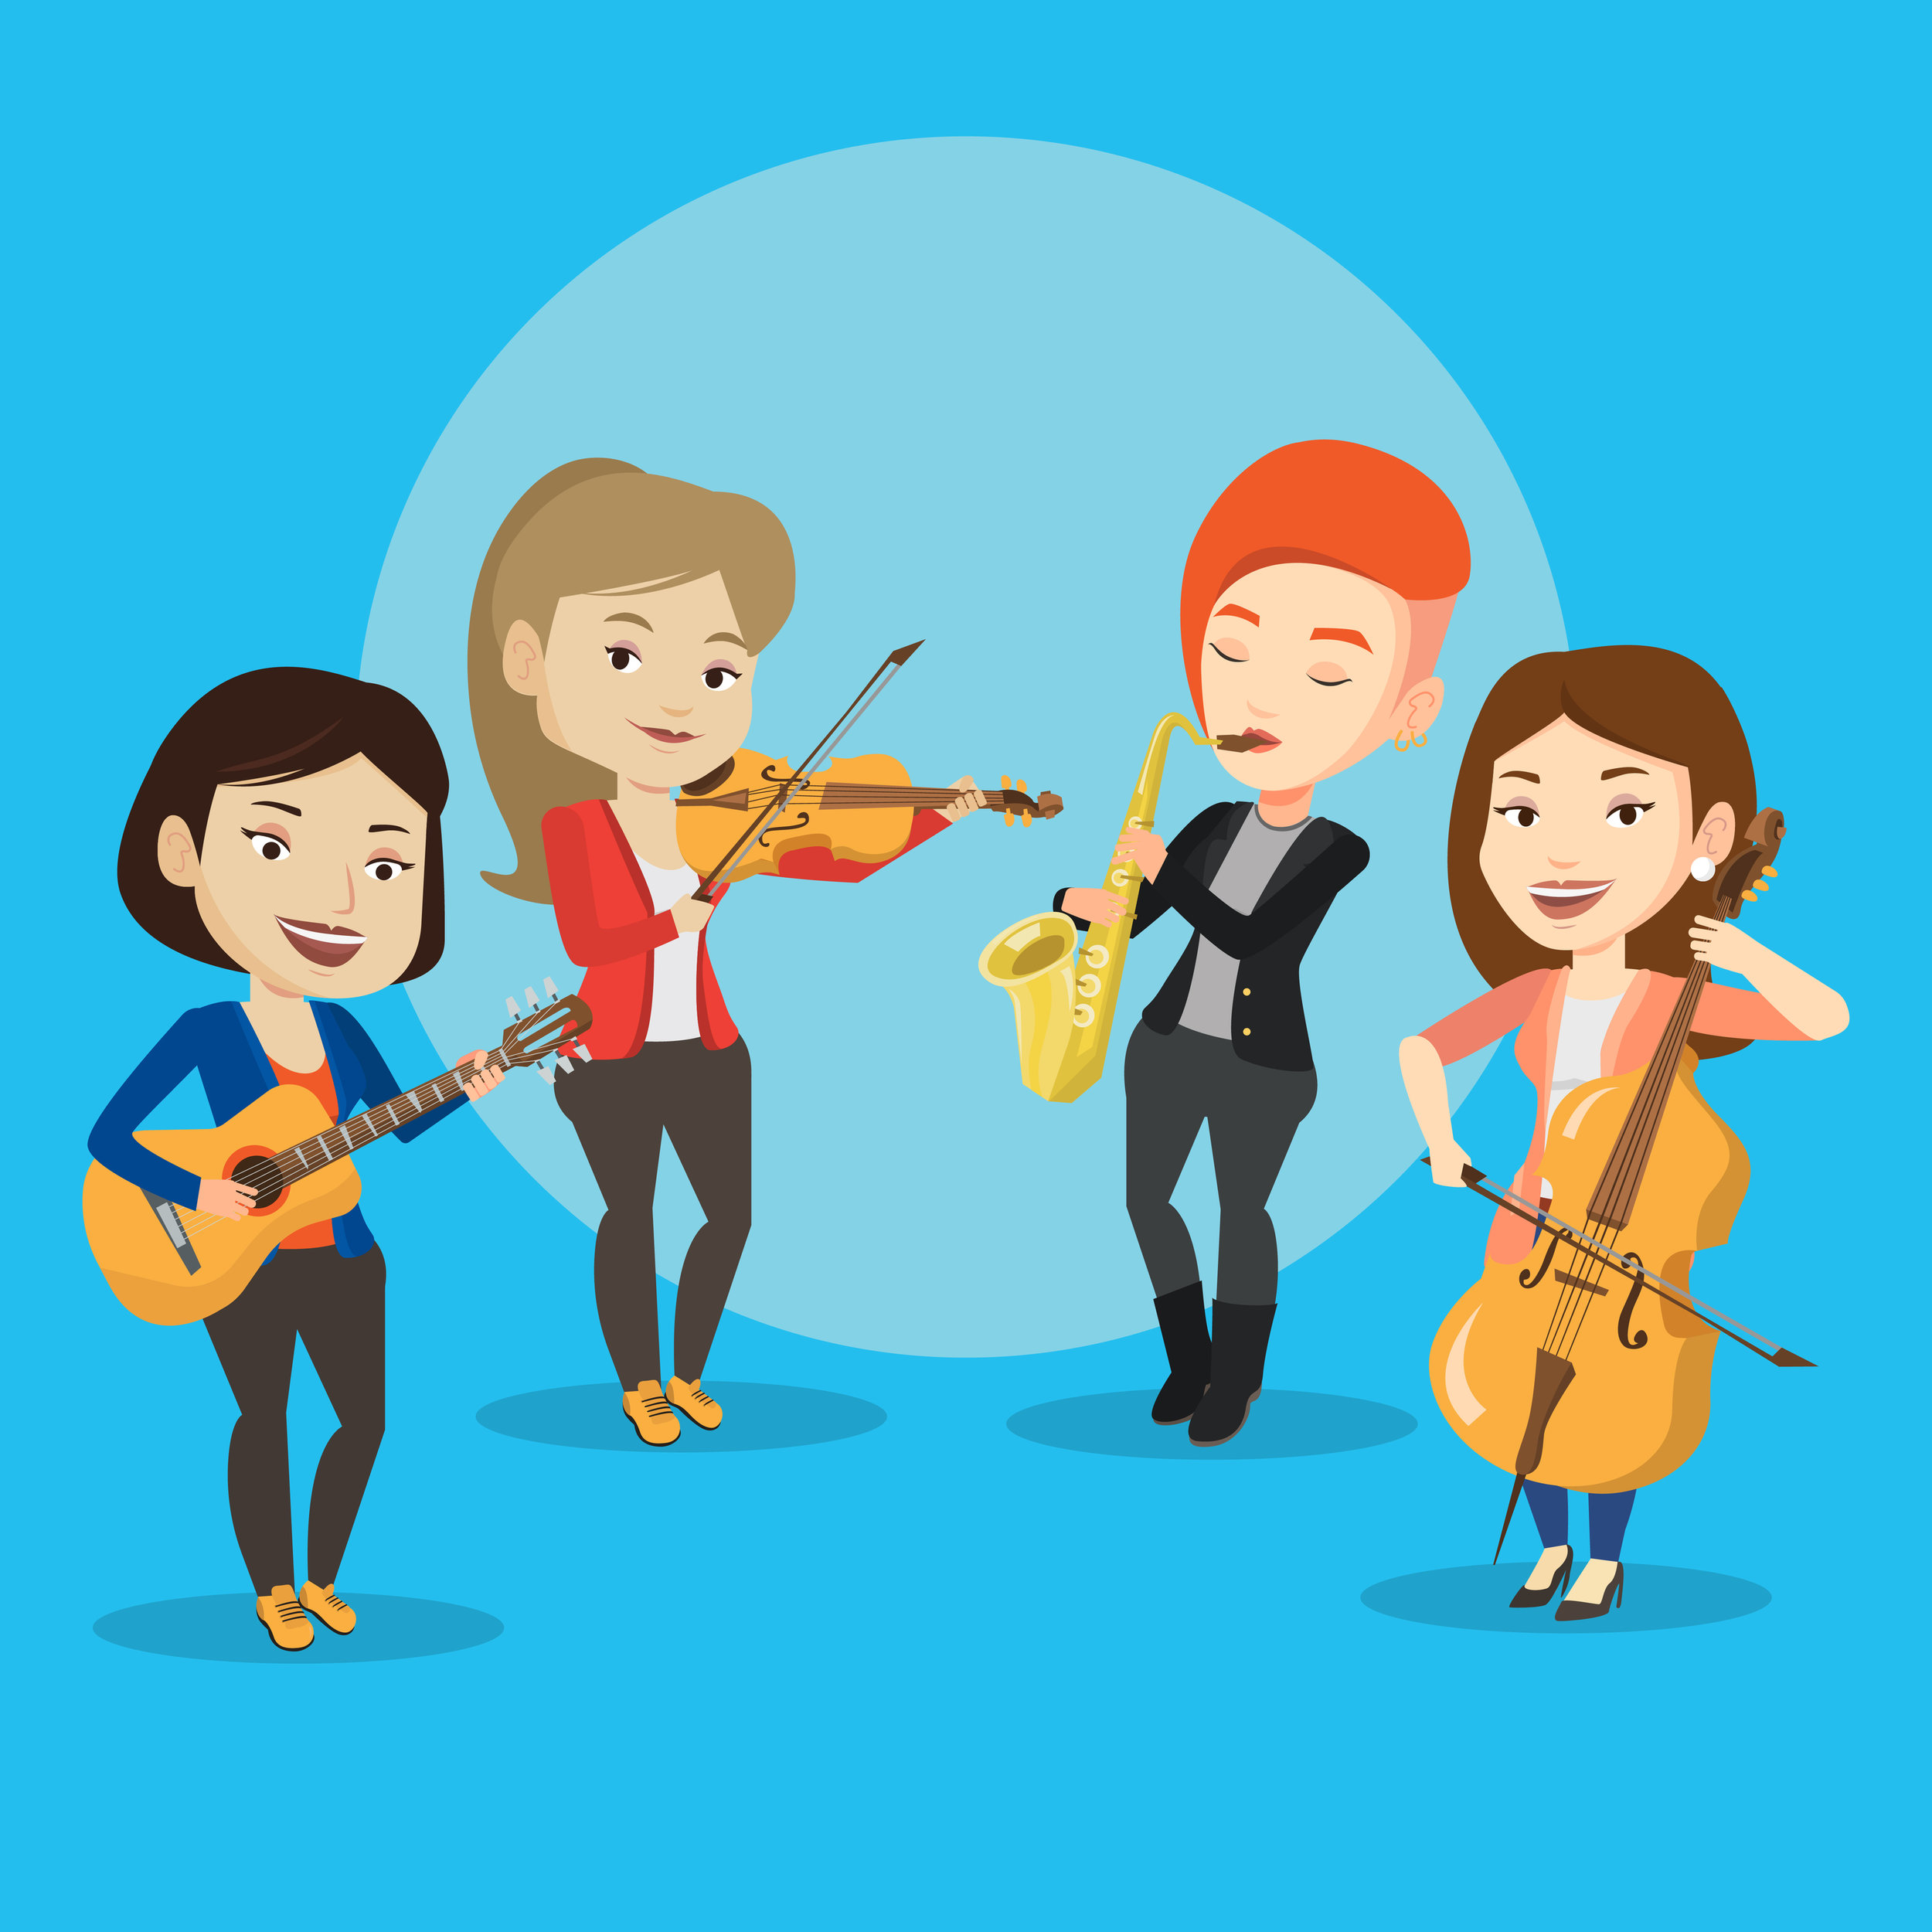 graphicstock-band-of-musicians-playing-on-musical-instruments-group-of-young-musicians-playing-on-musical-instruments-band-of-musicians-performing-with-instruments-vector-flat-design-illustration-square-layout_SQxQmP2L8-_L.jpg